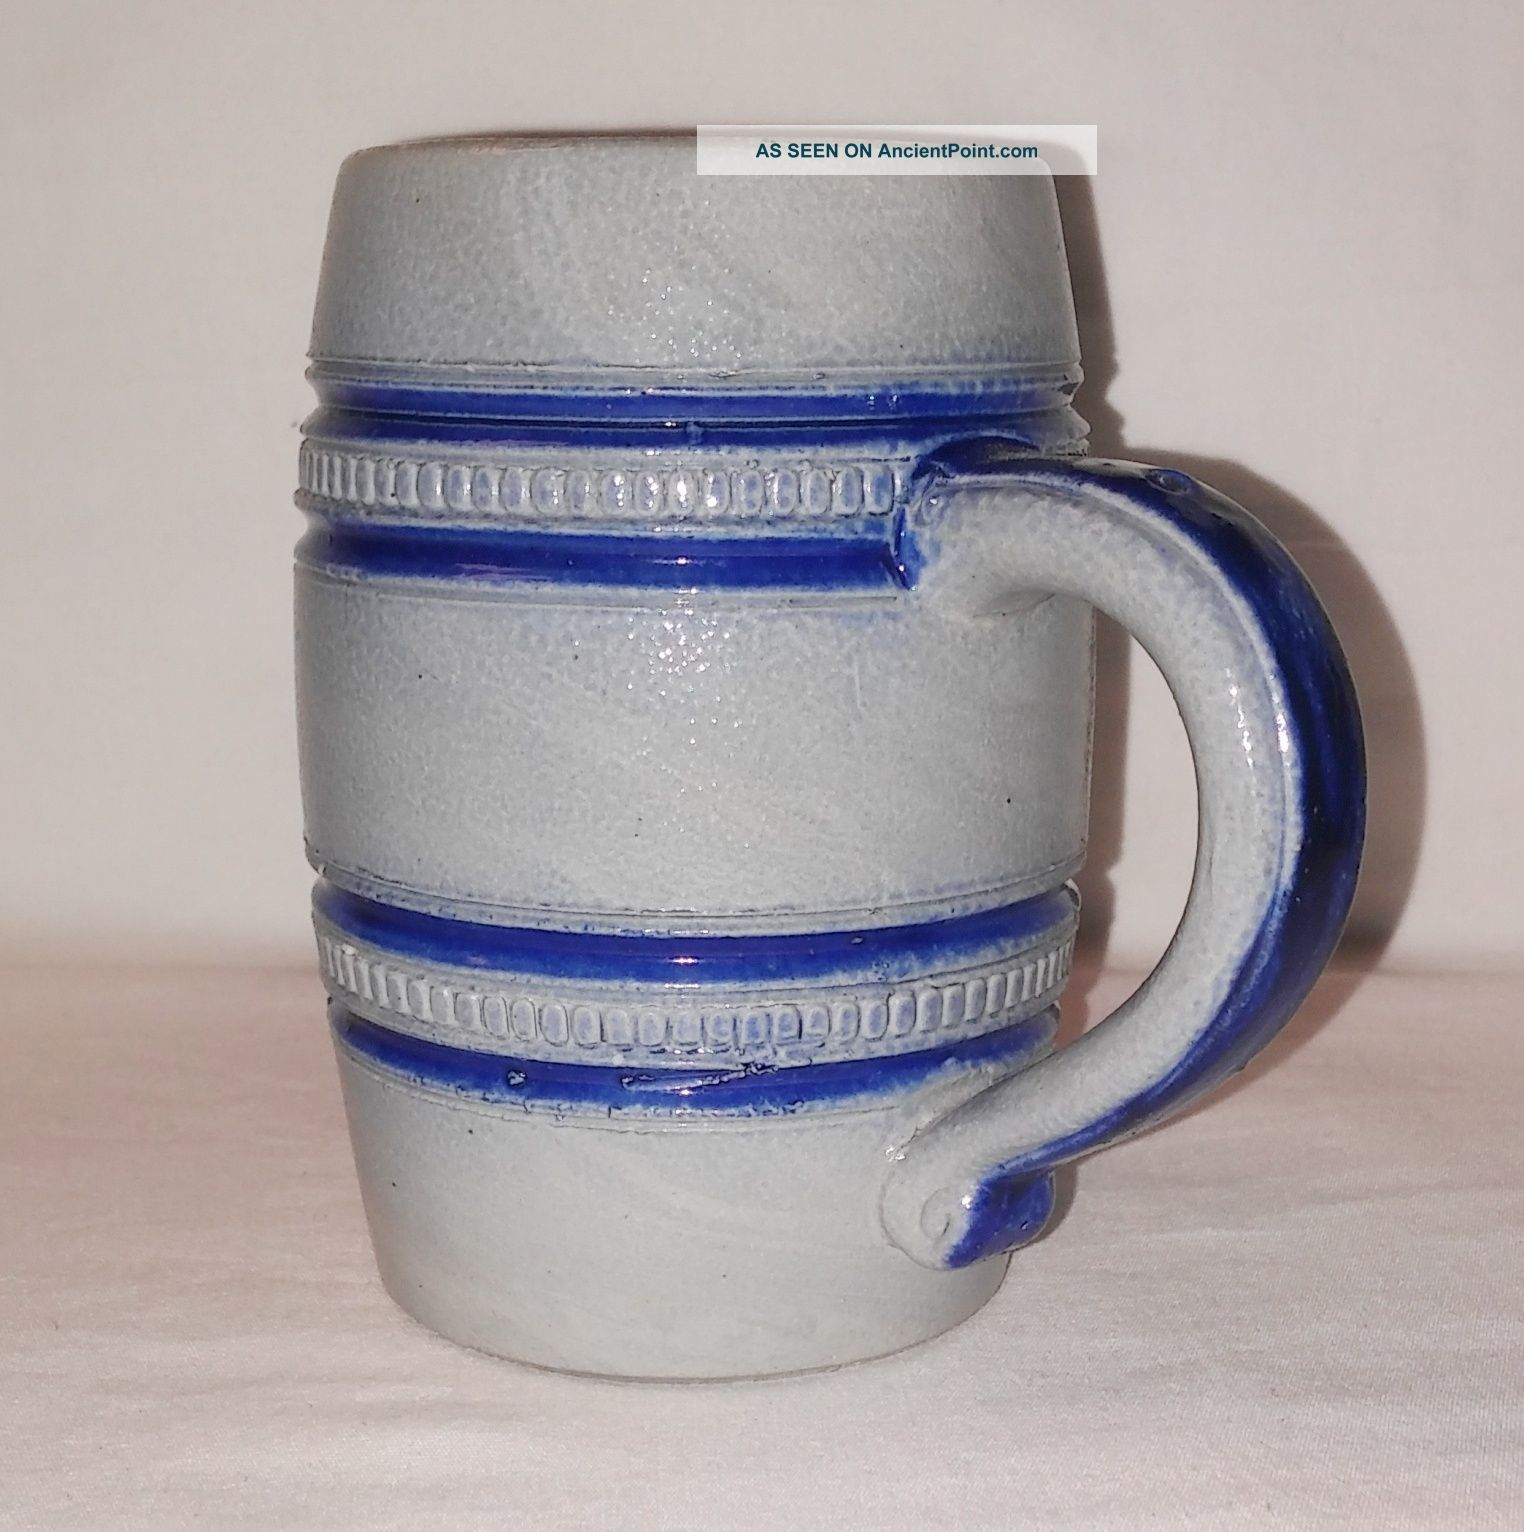 Antique B&d Salt Glaze Stoneware Stein Mug Cobalt Blue On Gray W/ Beaded Rings Mugs & Tankards photo